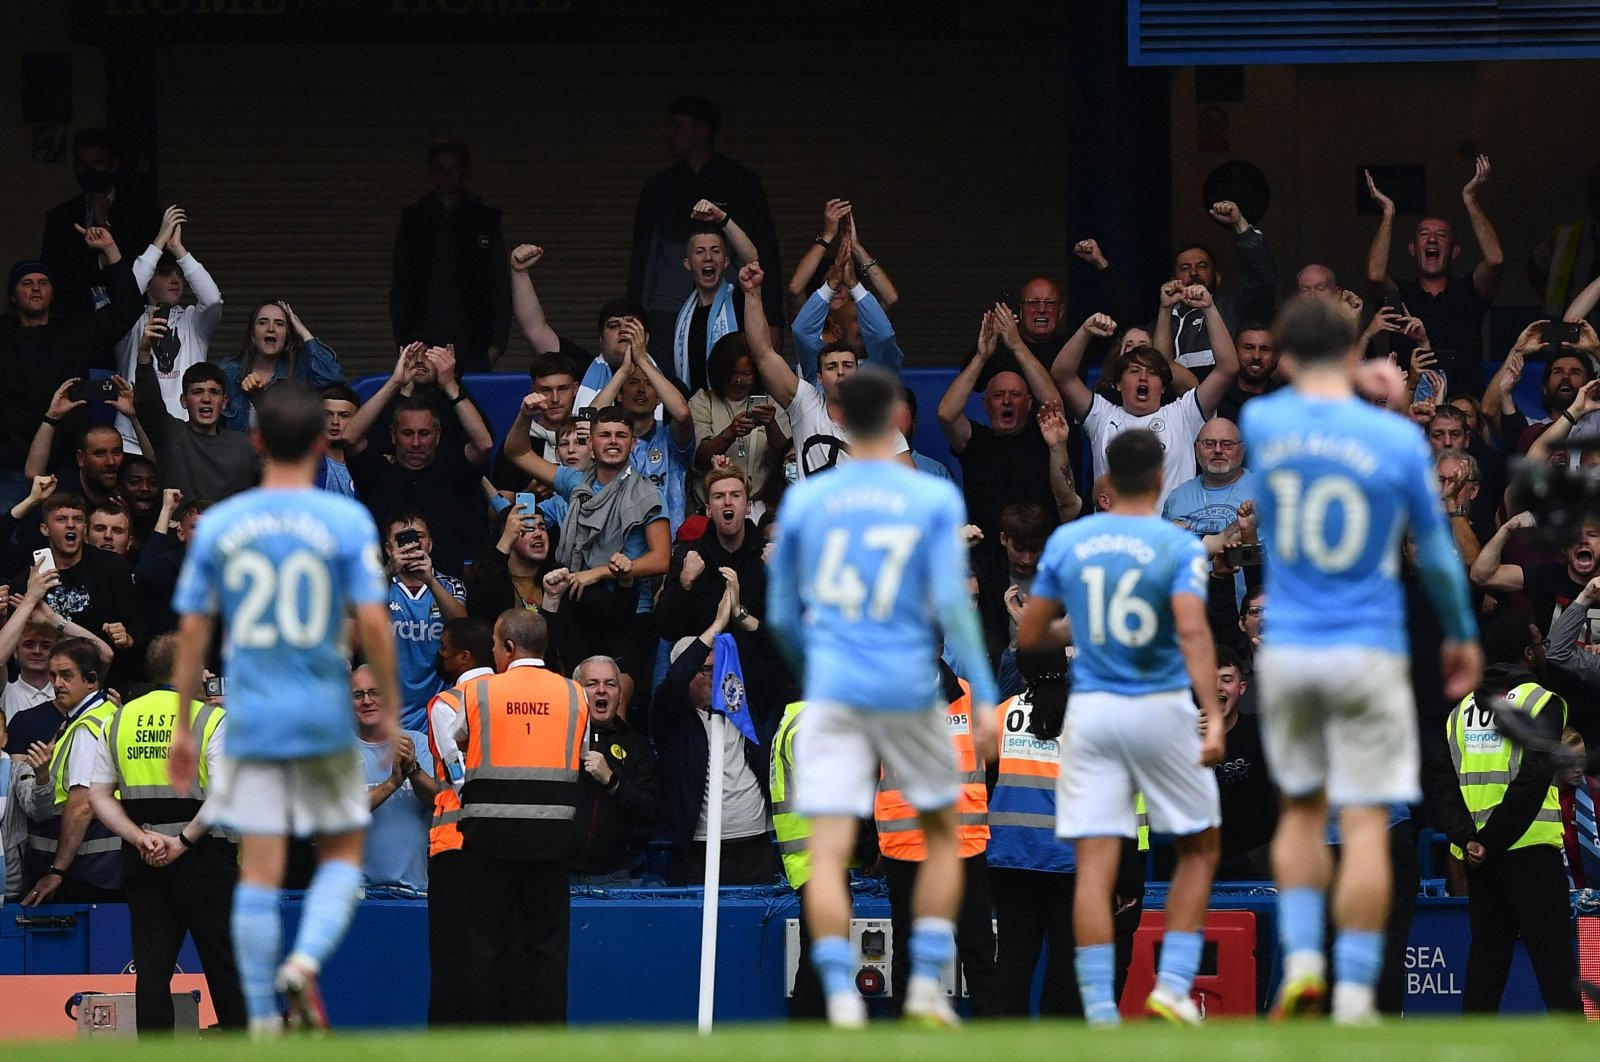 Manchester City's fans react at the final whistle during the English Premier League football match between Chelsea and Manchester City at Stamford Bridge in London on Sept. 25, 2021. (AFP Photo)